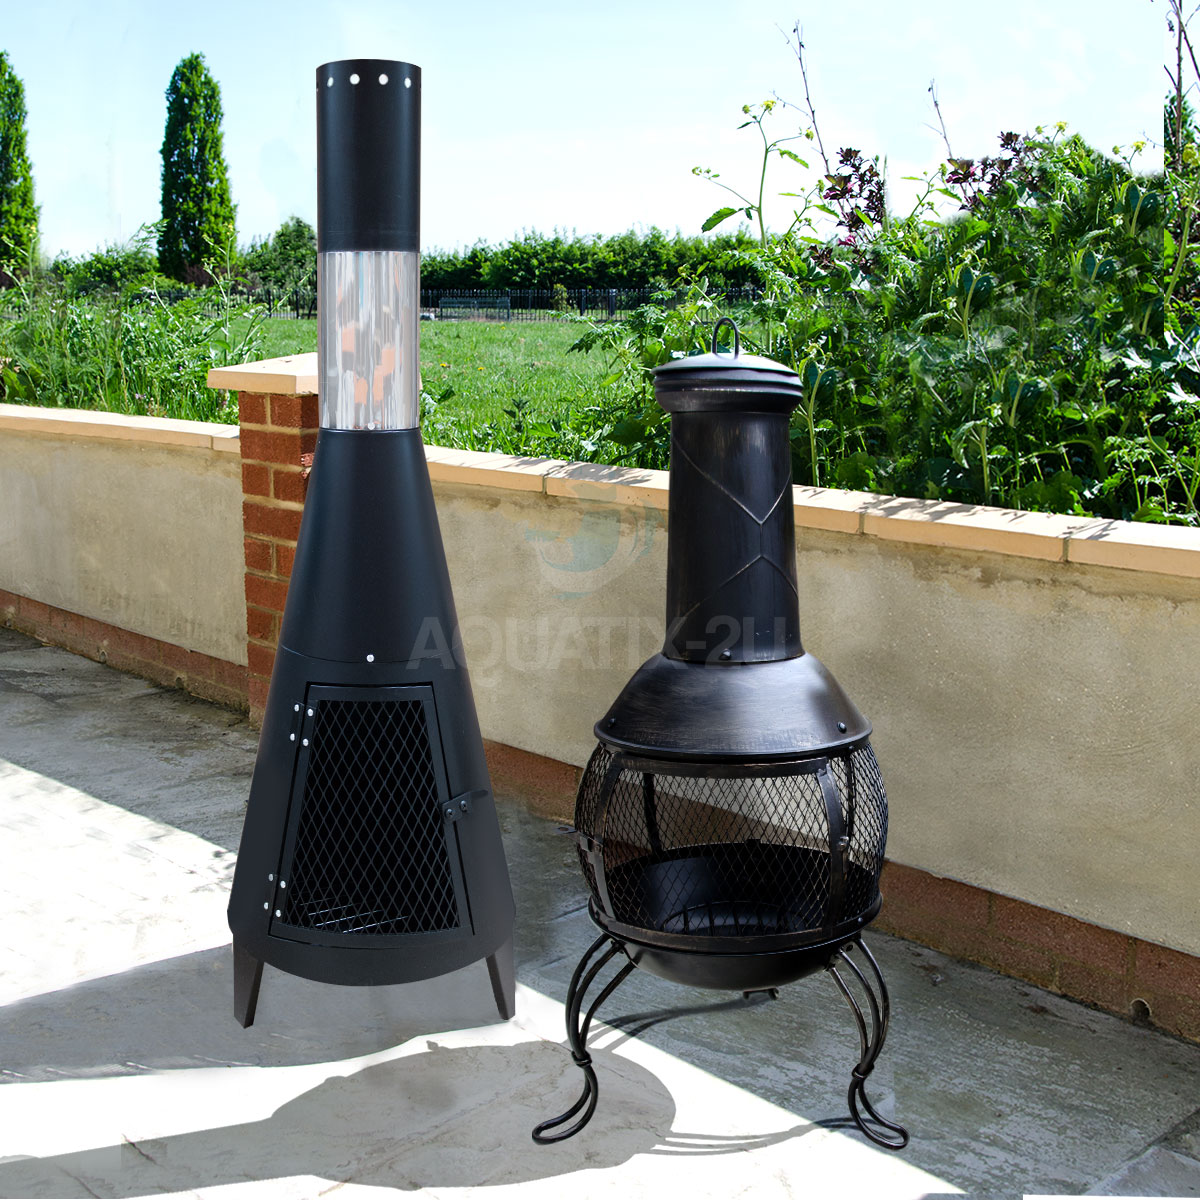 Chiminea Burner: OUTDOOR CHIMINEA GARDEN PATIO LOG BURNER WOOD FIRE HEATER